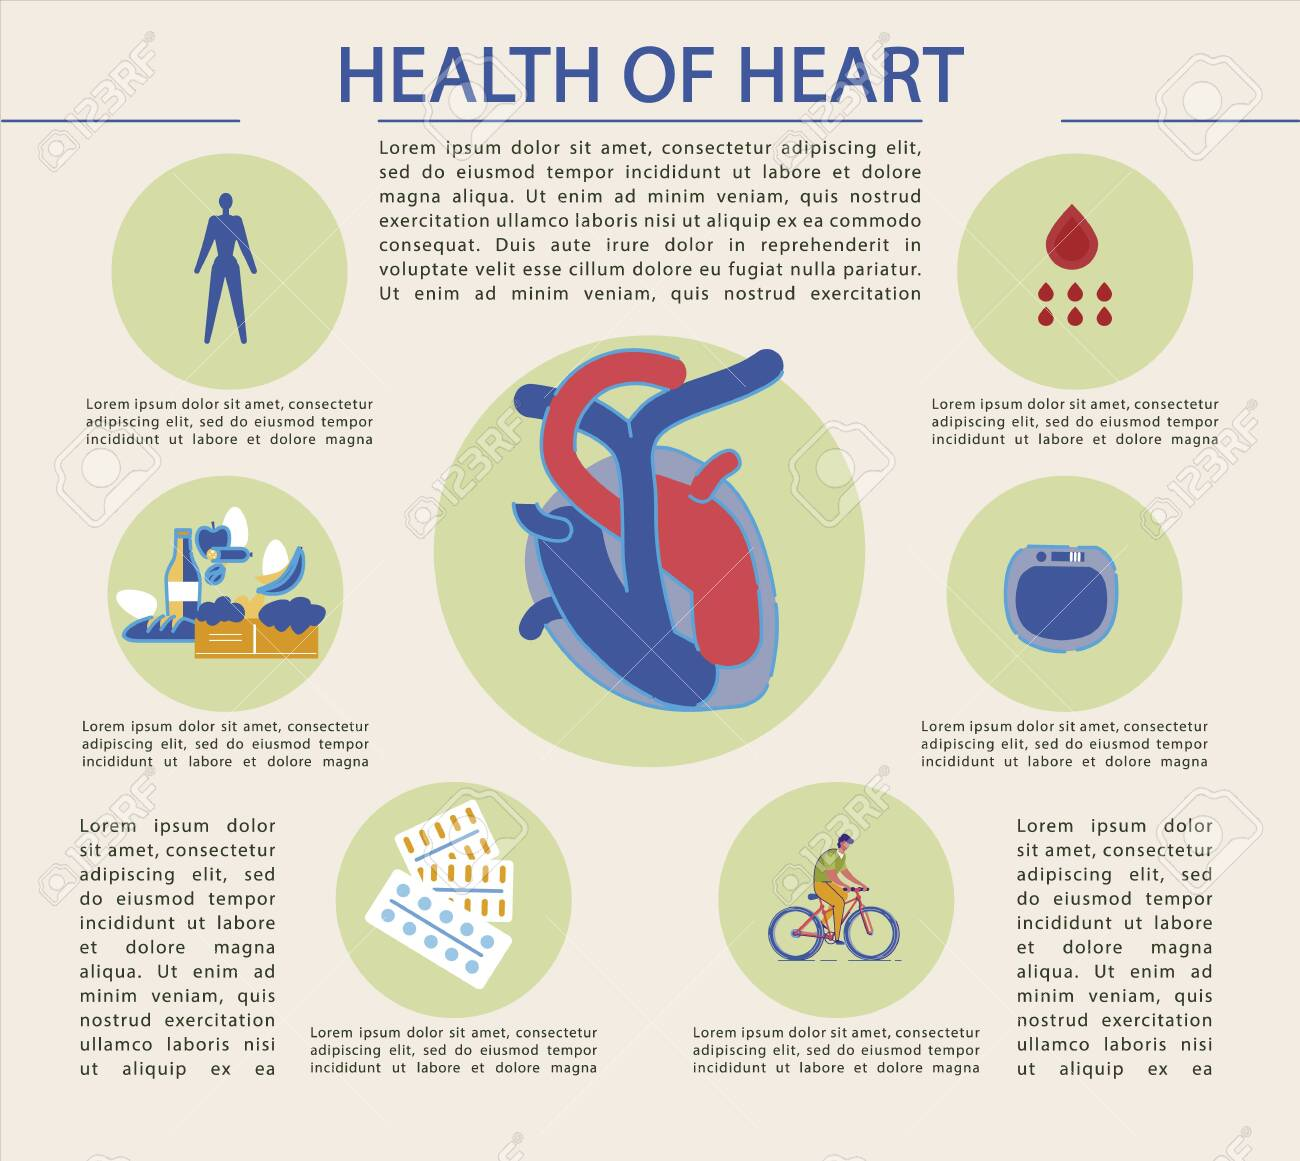 Bright Banner Written Health Of Heart Infographic In Center Royalty Free Cliparts Vectors And Stock Illustration Image 138145132